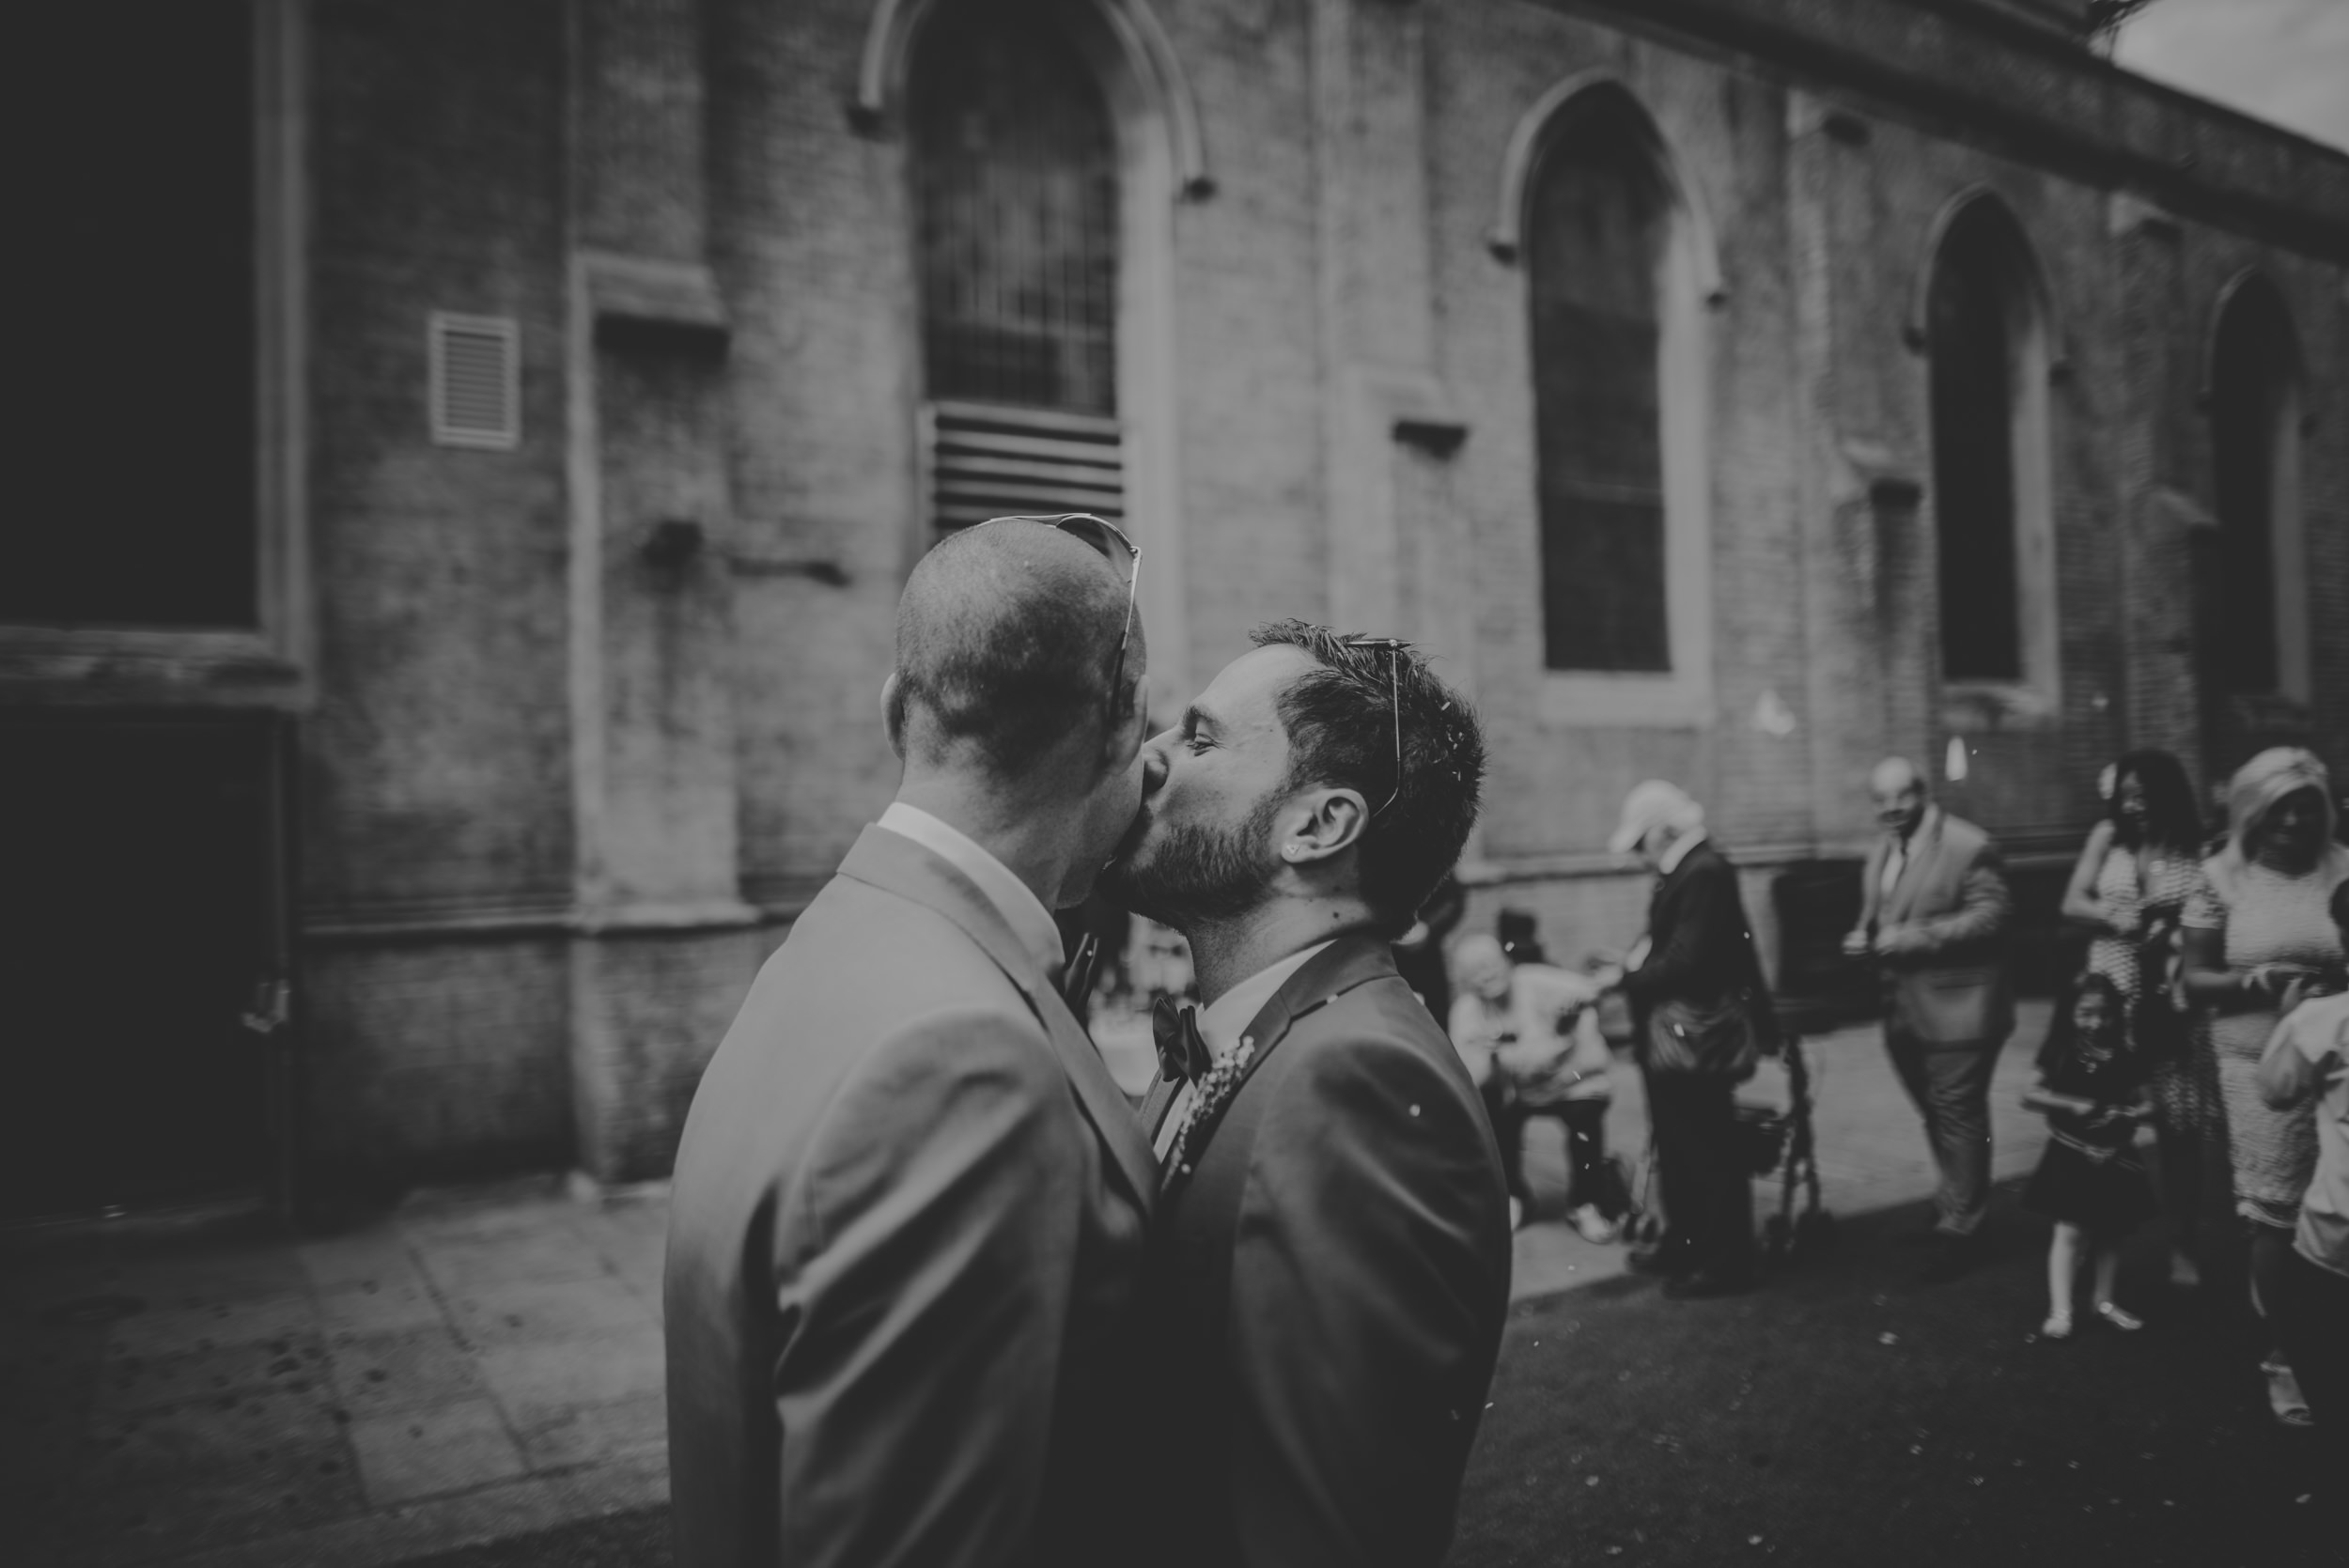 Rhys-and-Alex-Wedding-in-London-Manu-Mendoza-Wedding-Photography-319.jpg